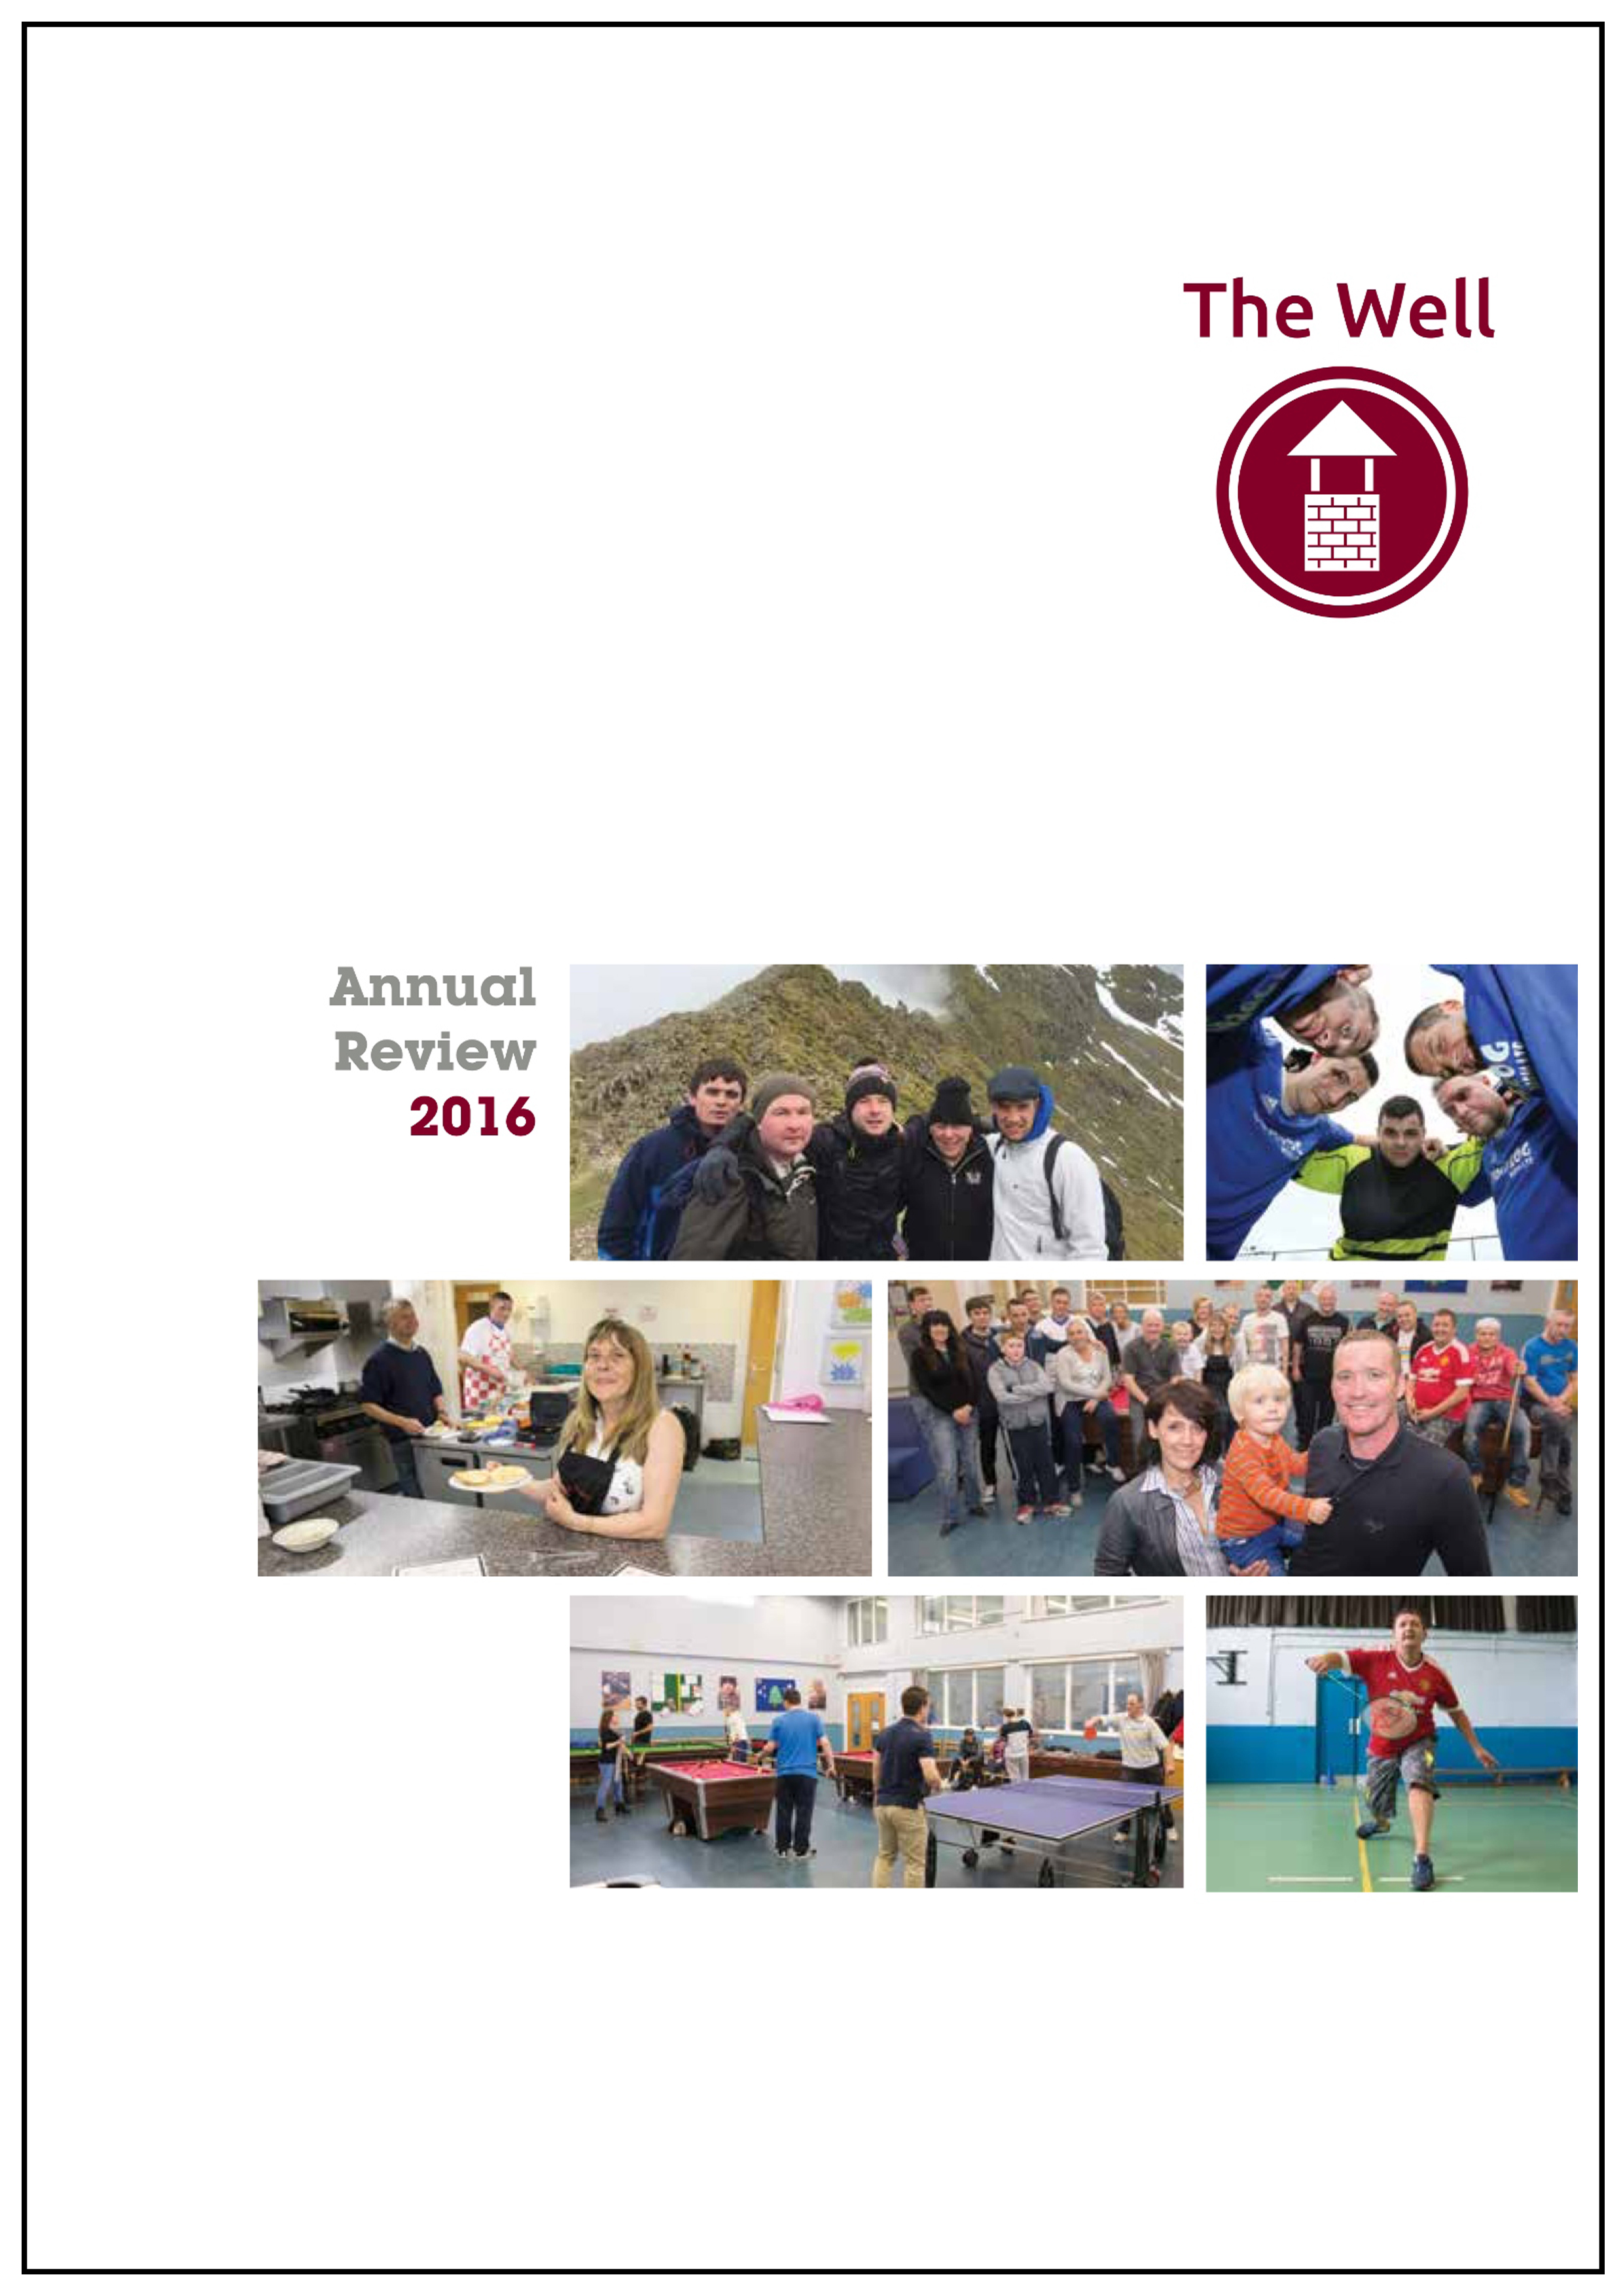 The Well Annual Review